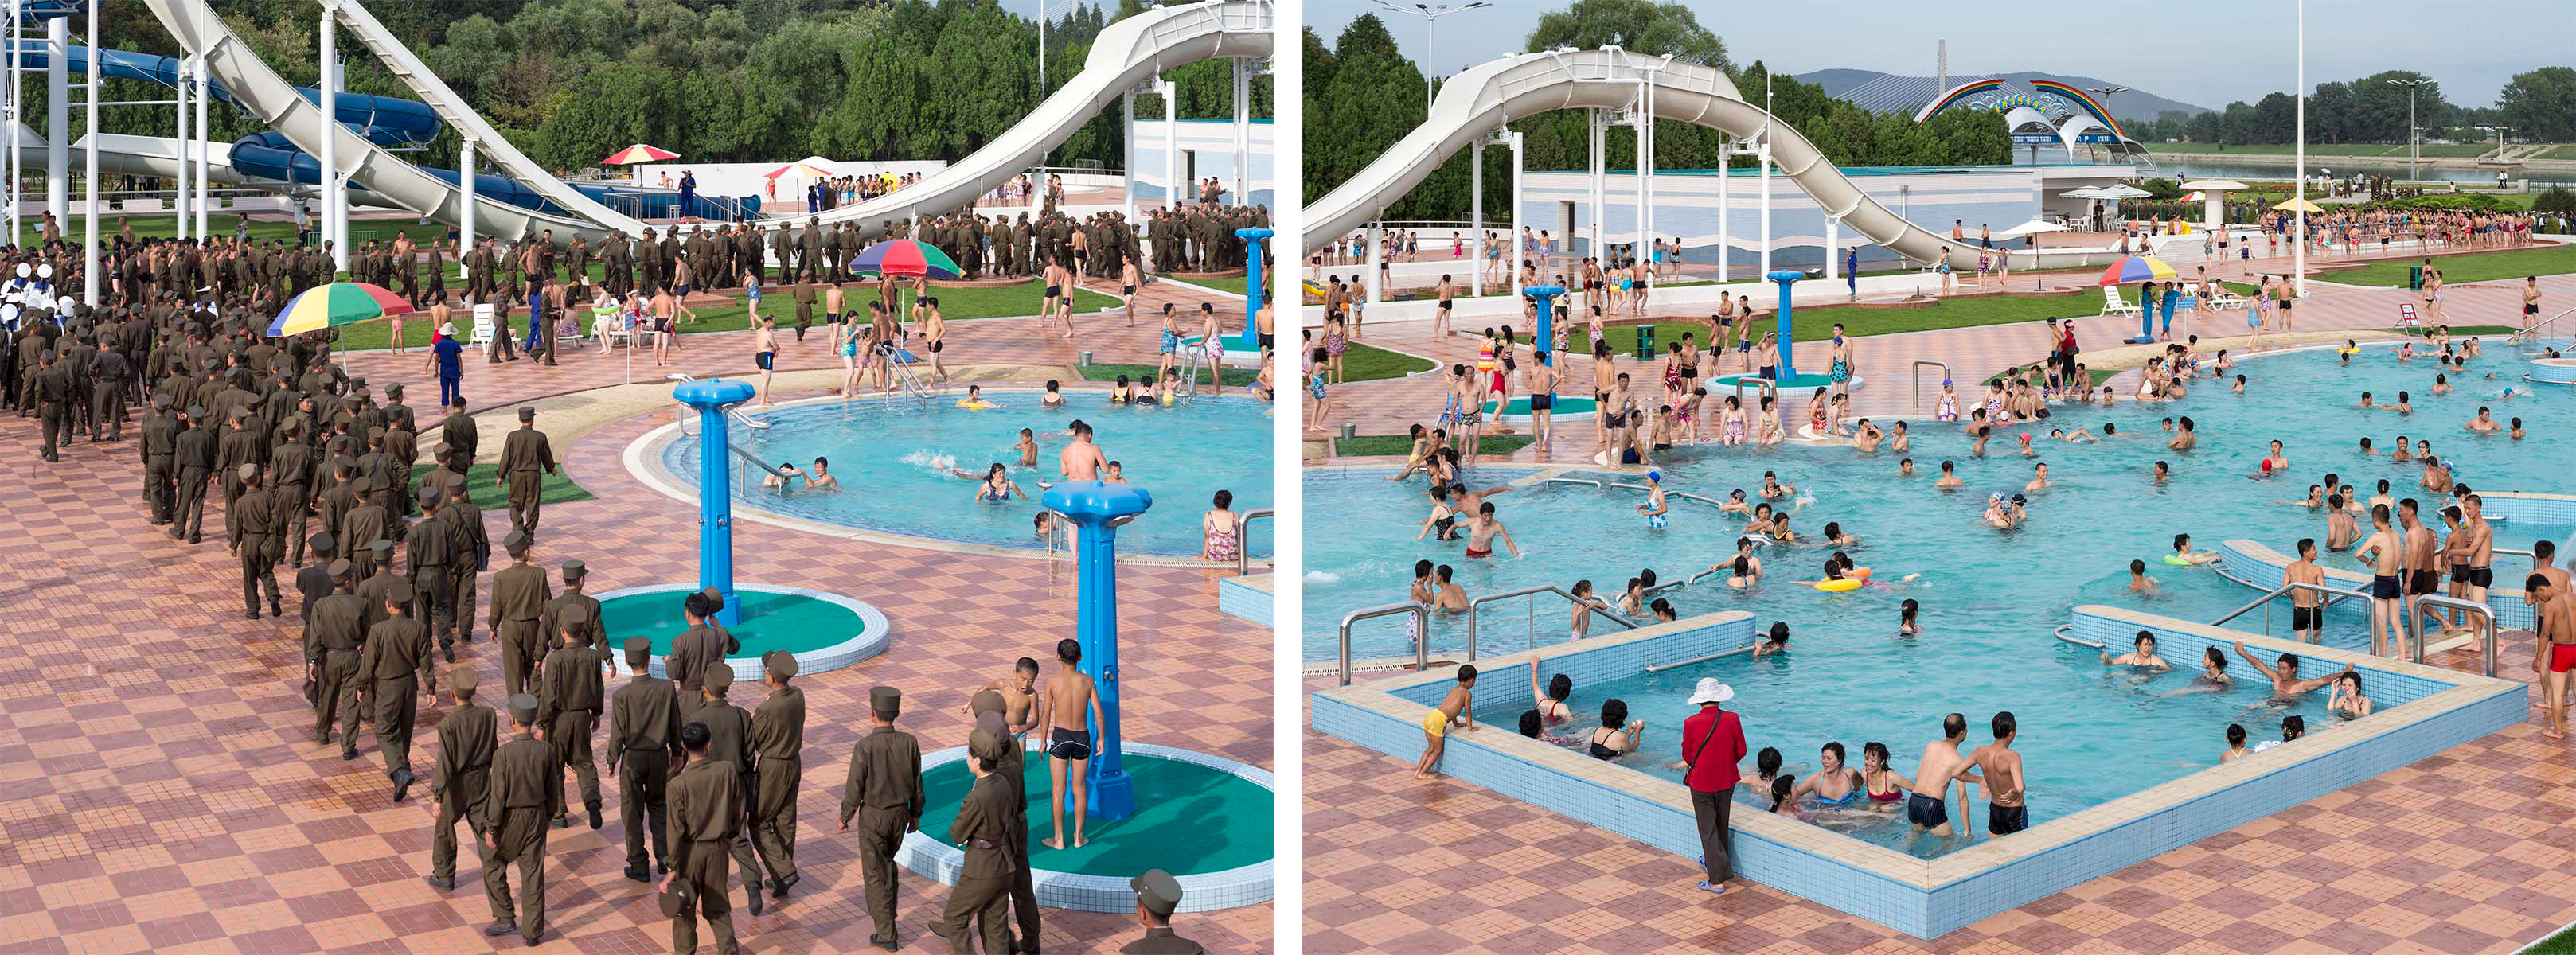 7a_Bezjak_Port_2_PJ_Pool